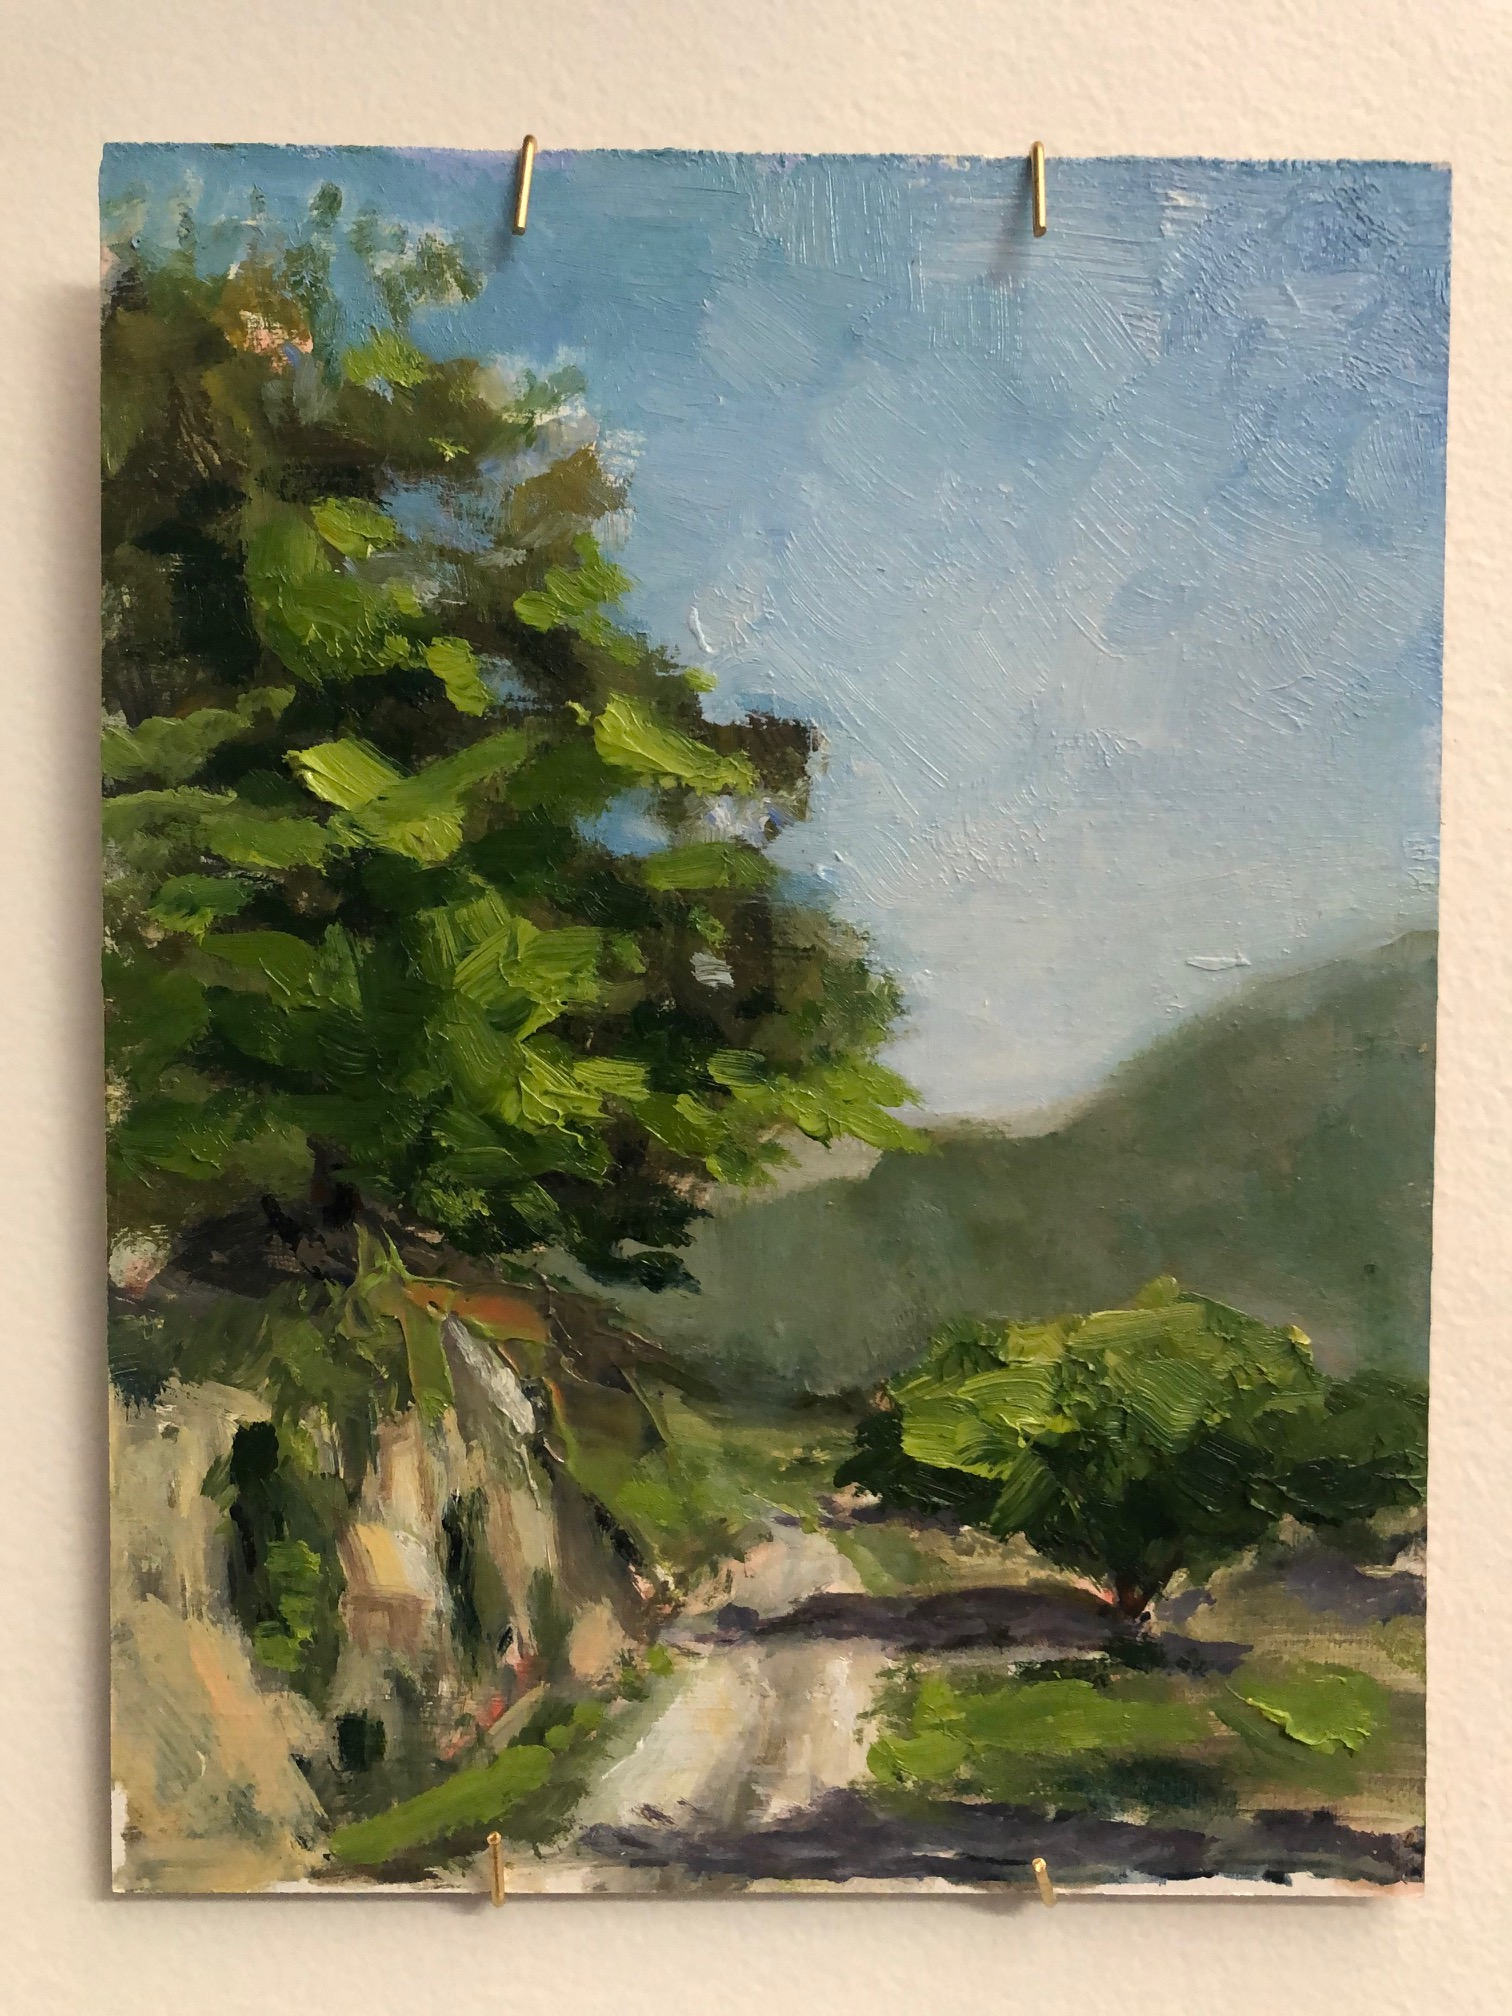 French Country Road, 6x8, oil on panel, by Frances Schultz